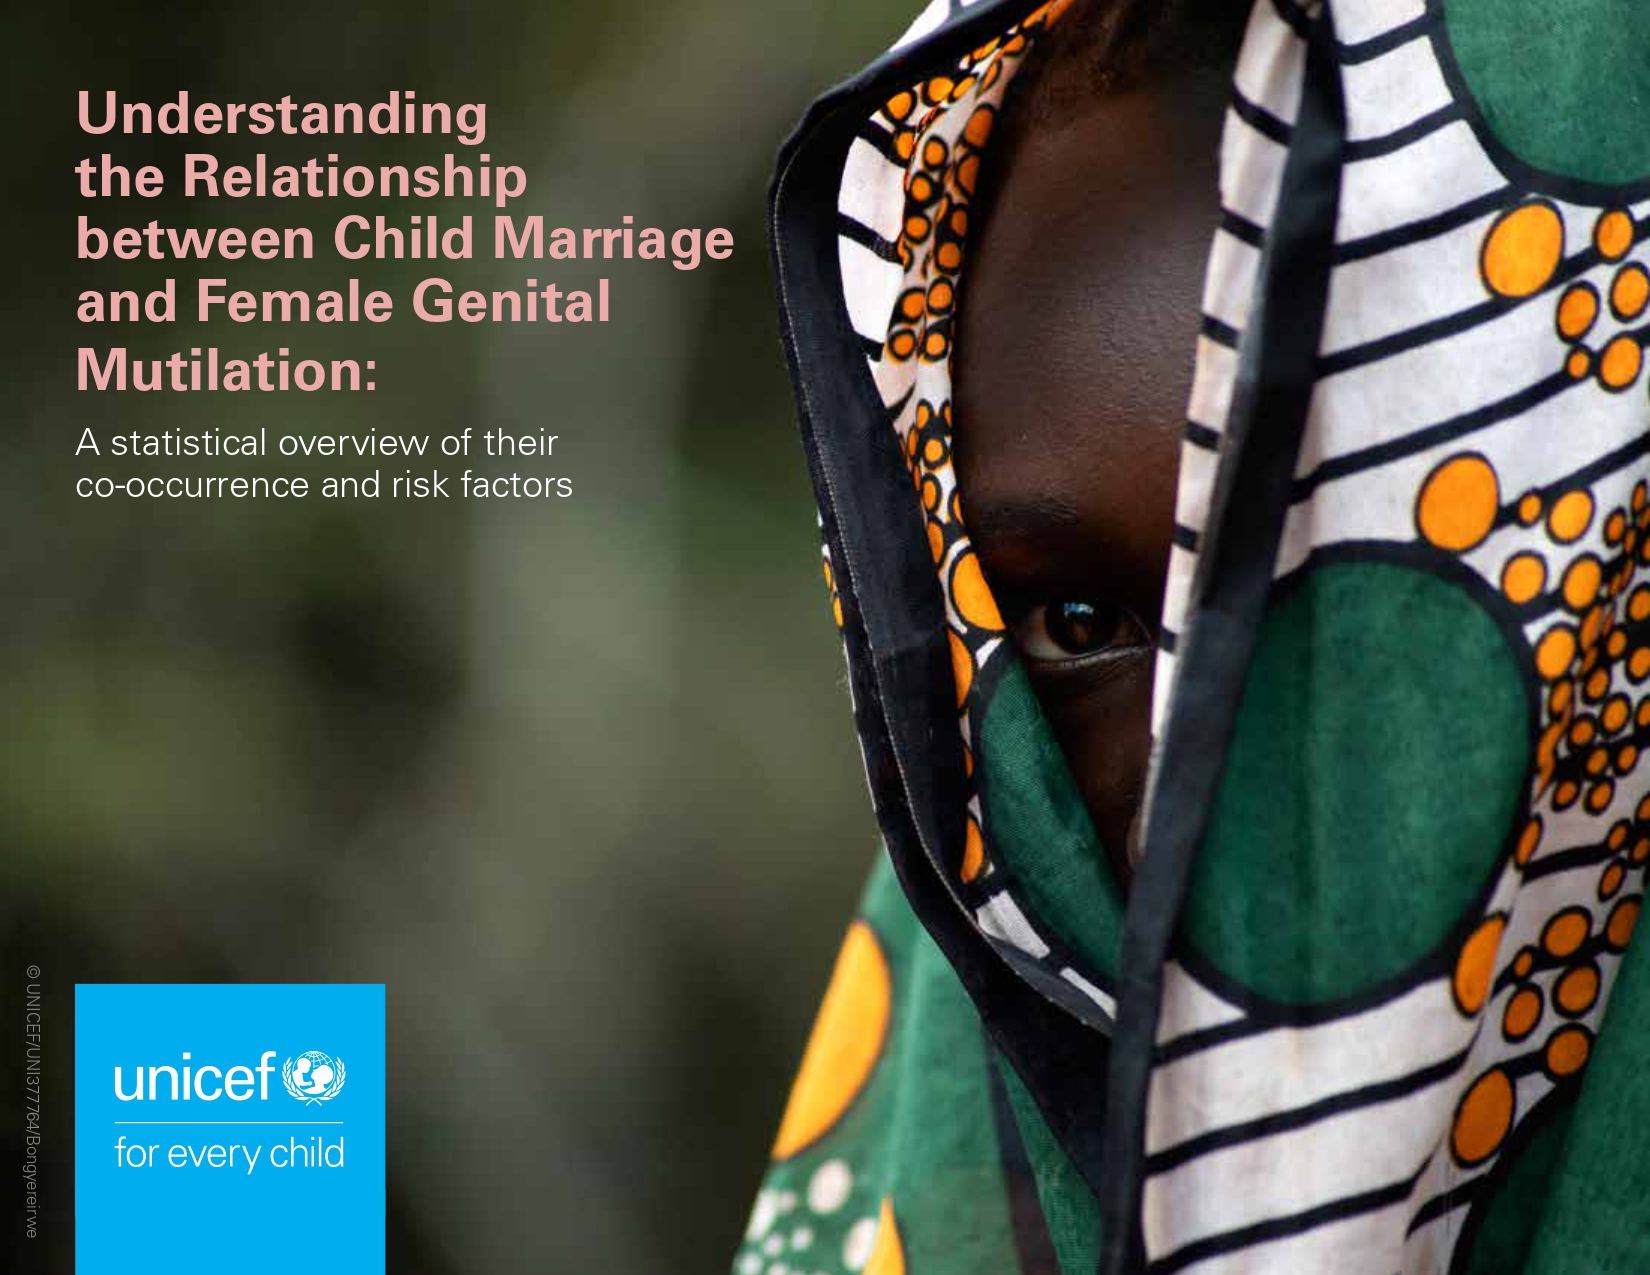 Understanding the relationship between child marriage and female genital mutilation